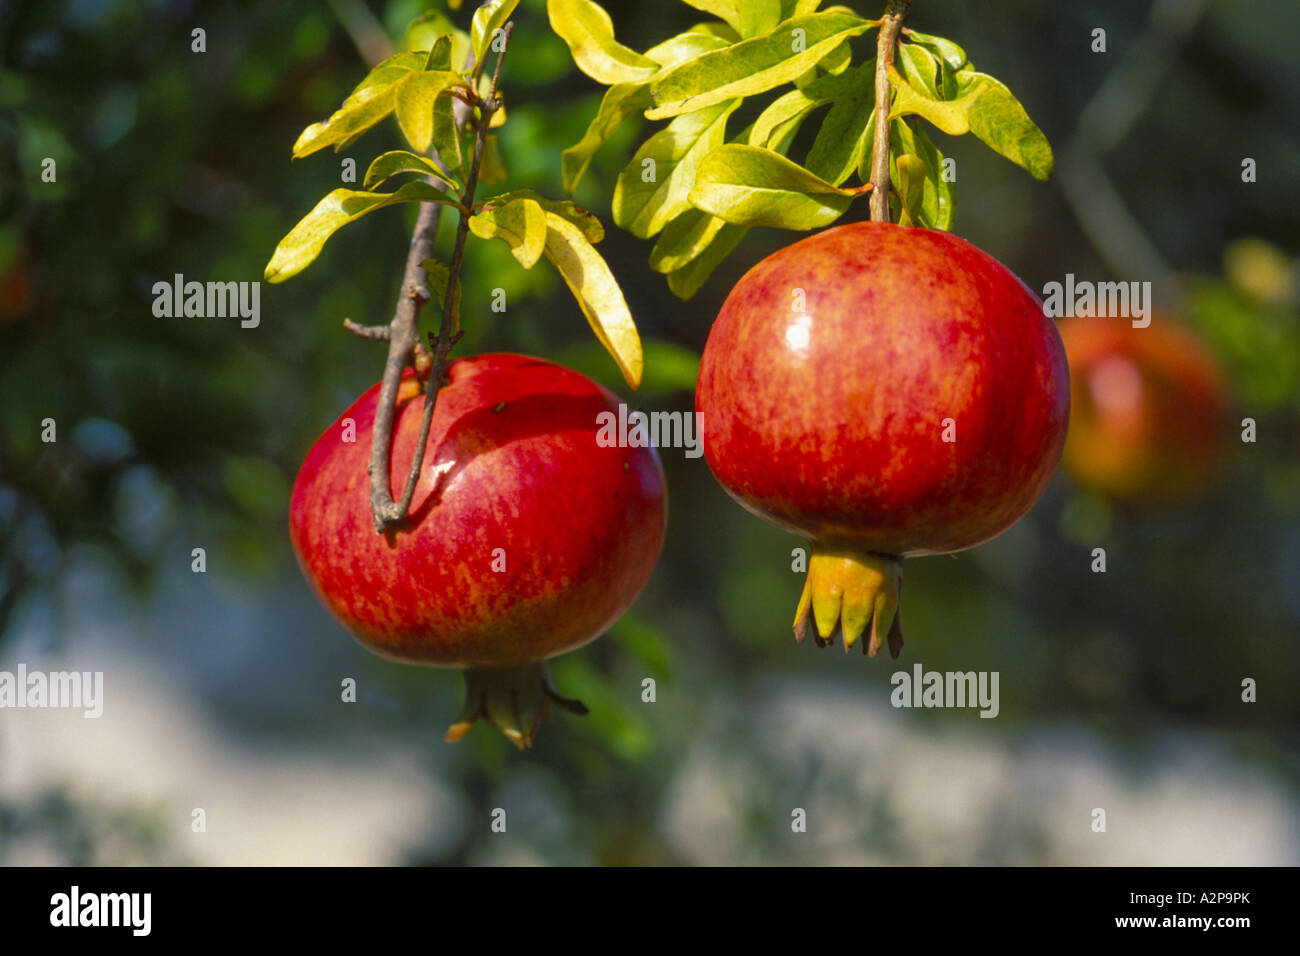 Pomegranate anar punica granatum fruits in ancint times pomegranate anar punica granatum fruits in ancint times symbol for fertility and erotic love turkey biocorpaavc